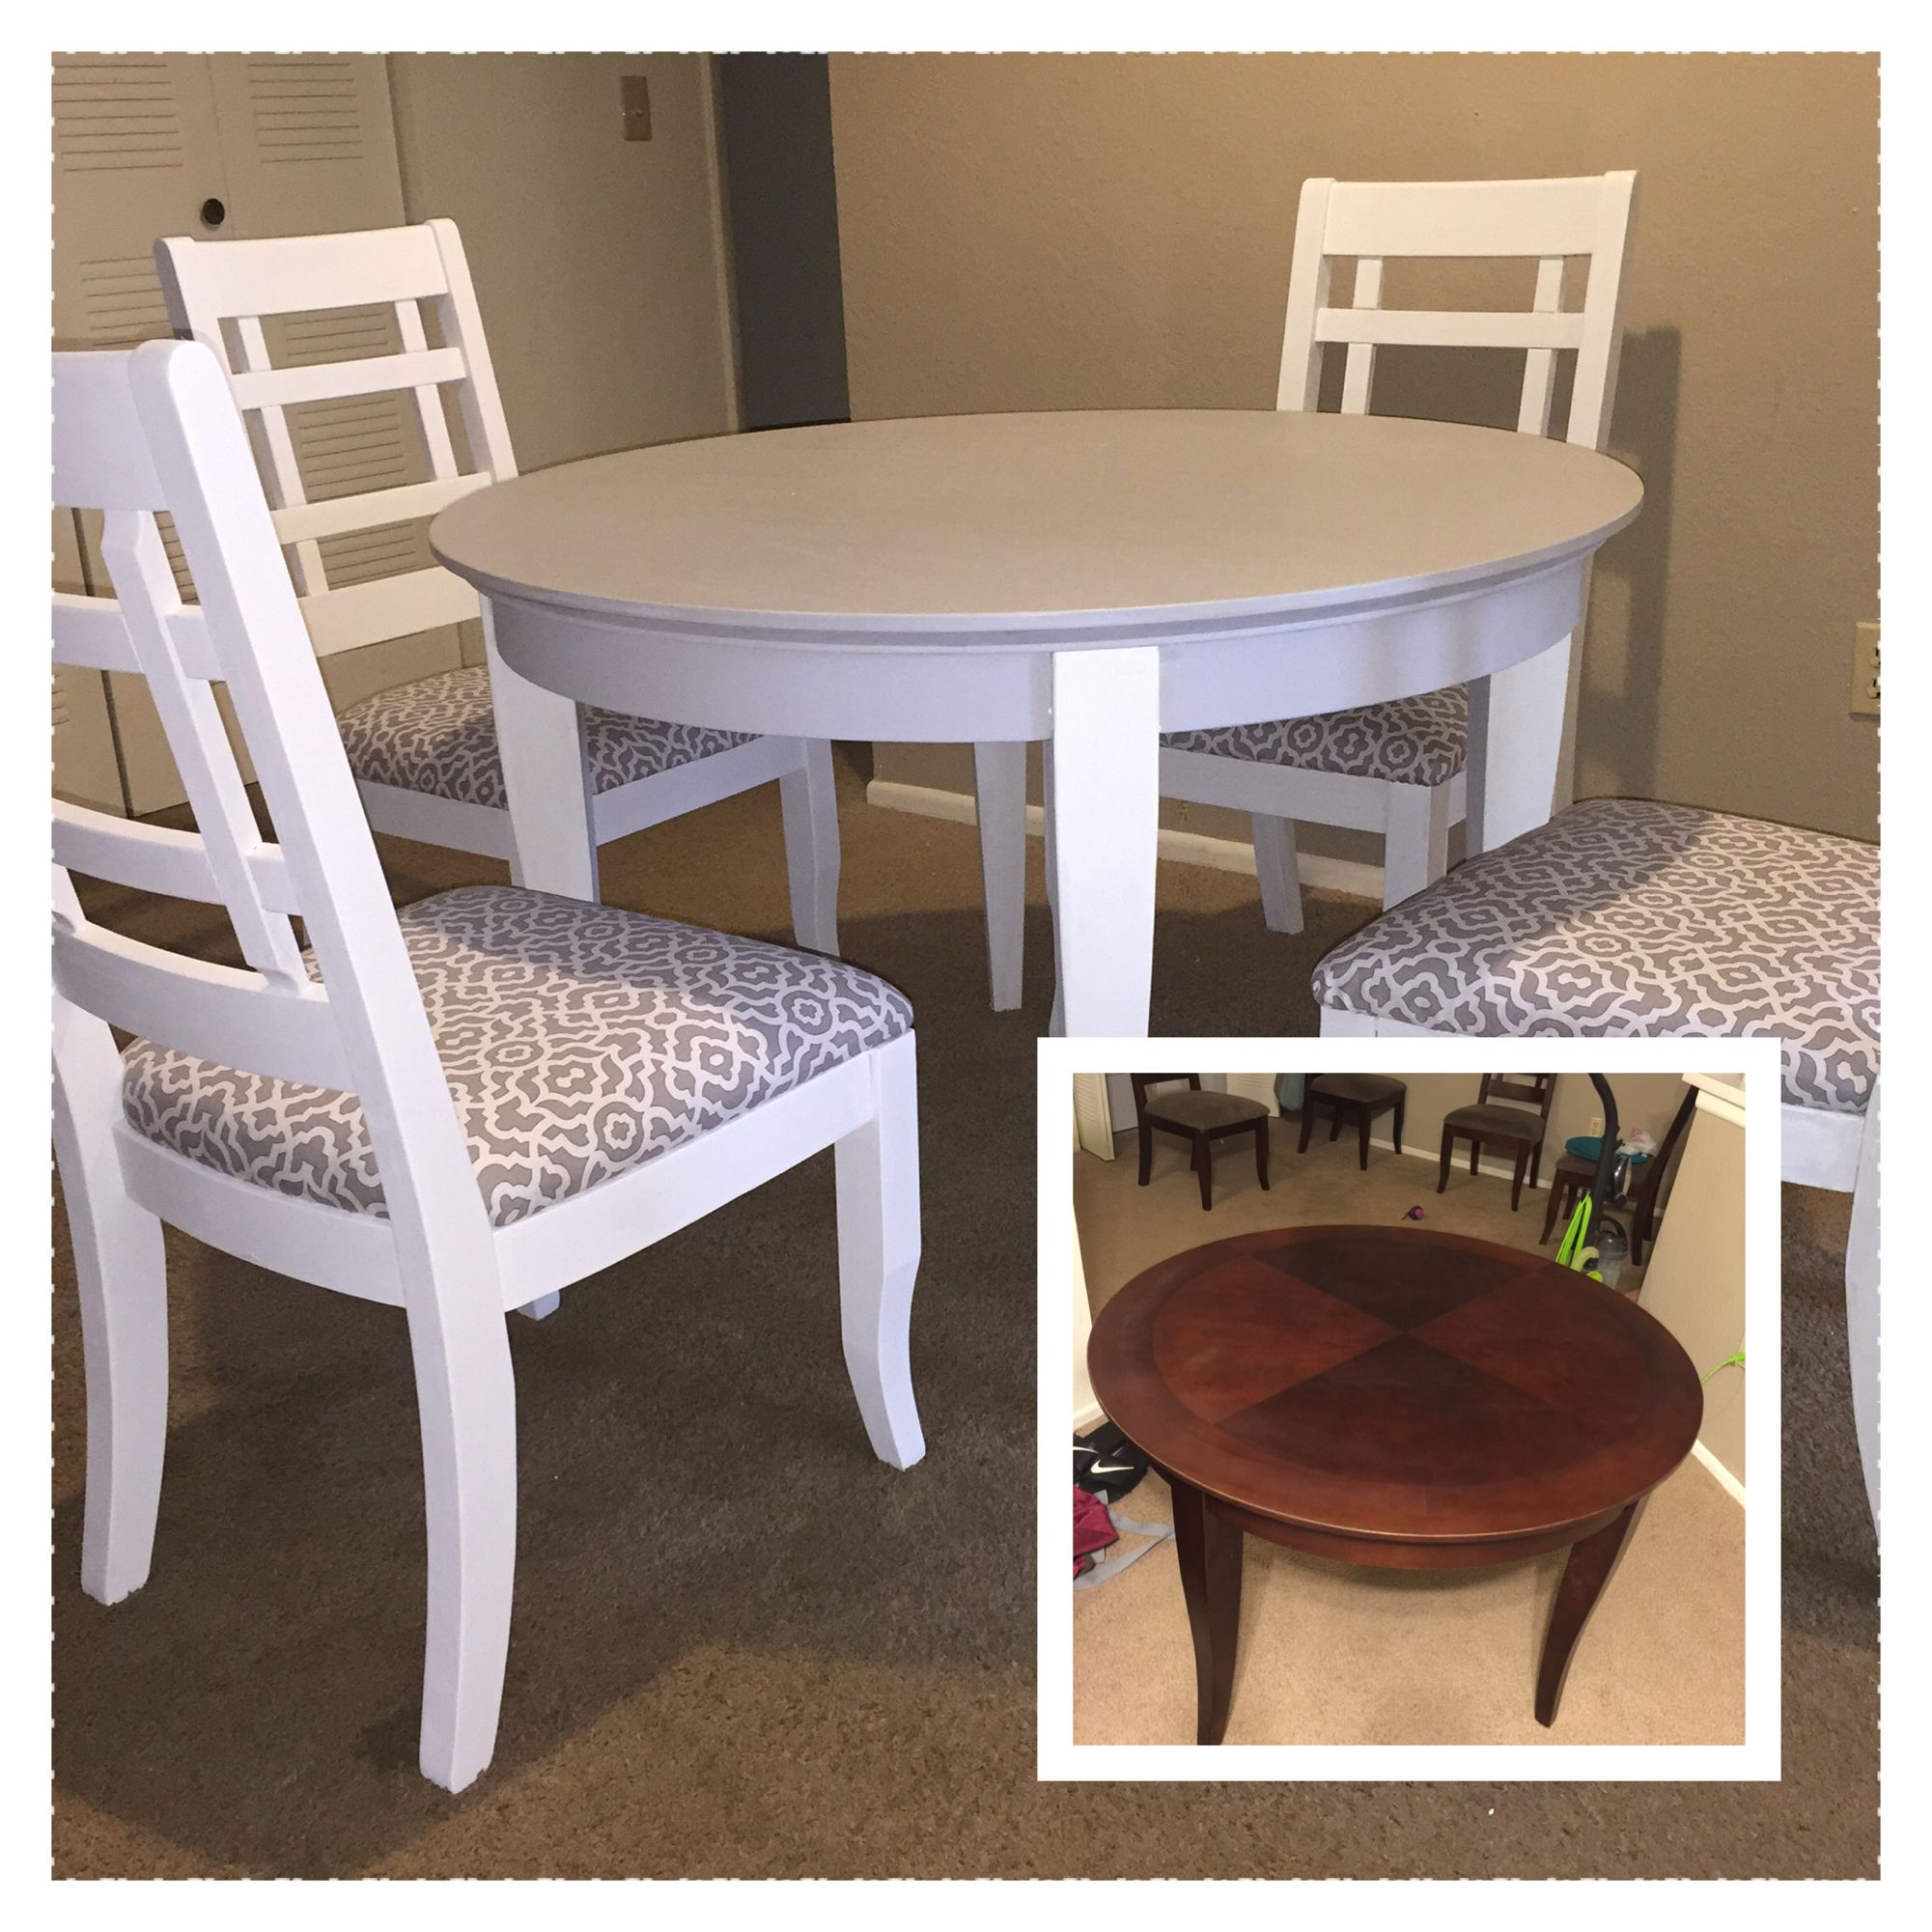 Diy Paint Dining Room Table chalk paint dining table | diy | pinterest | paint dining tables